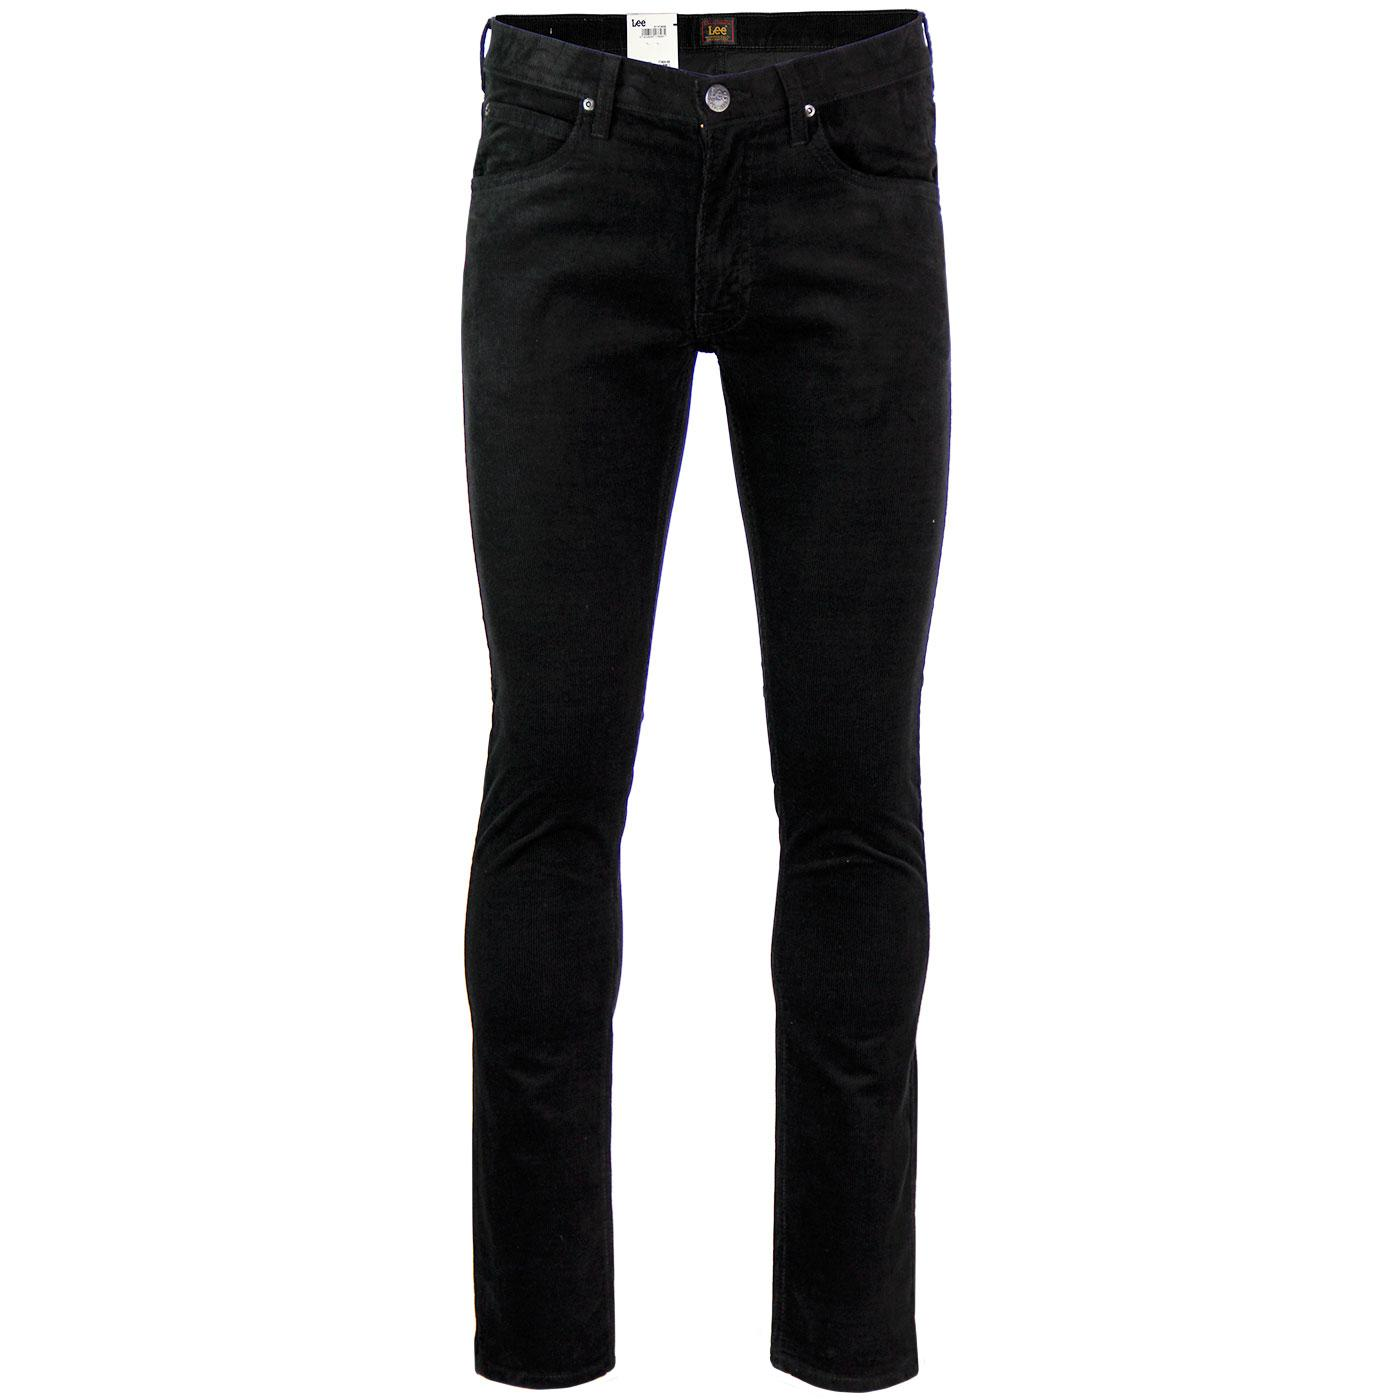 Luke LEE JEANS Mod Slim Tapered Cord Jeans (B)